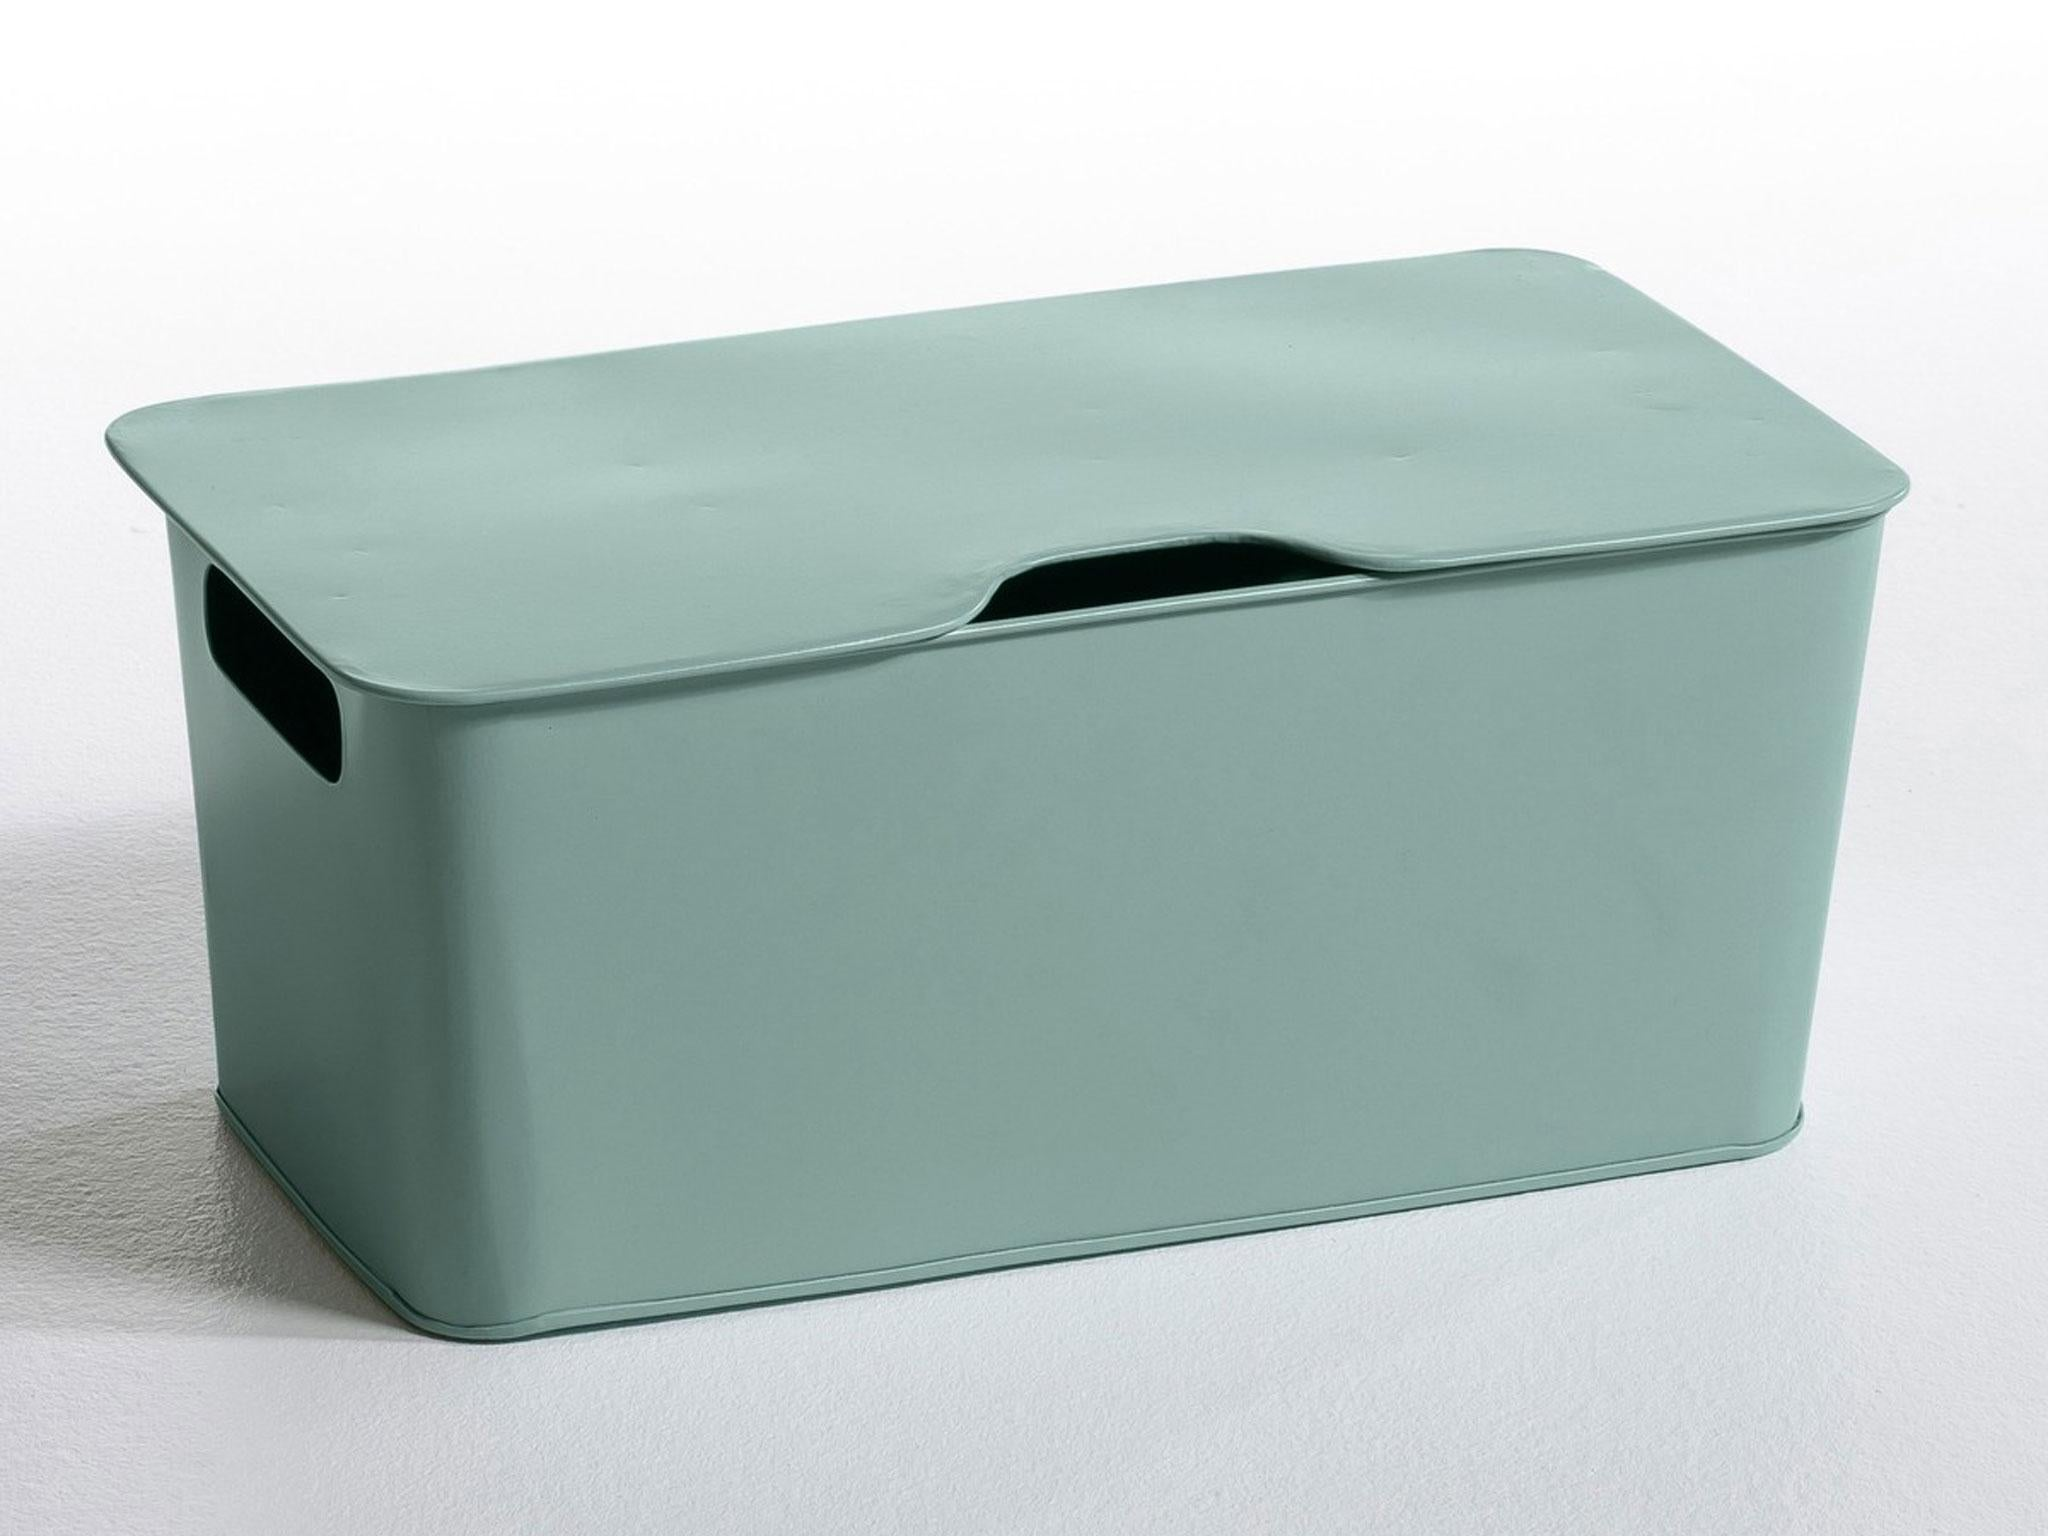 10 best storage boxes and baskets | The Independent